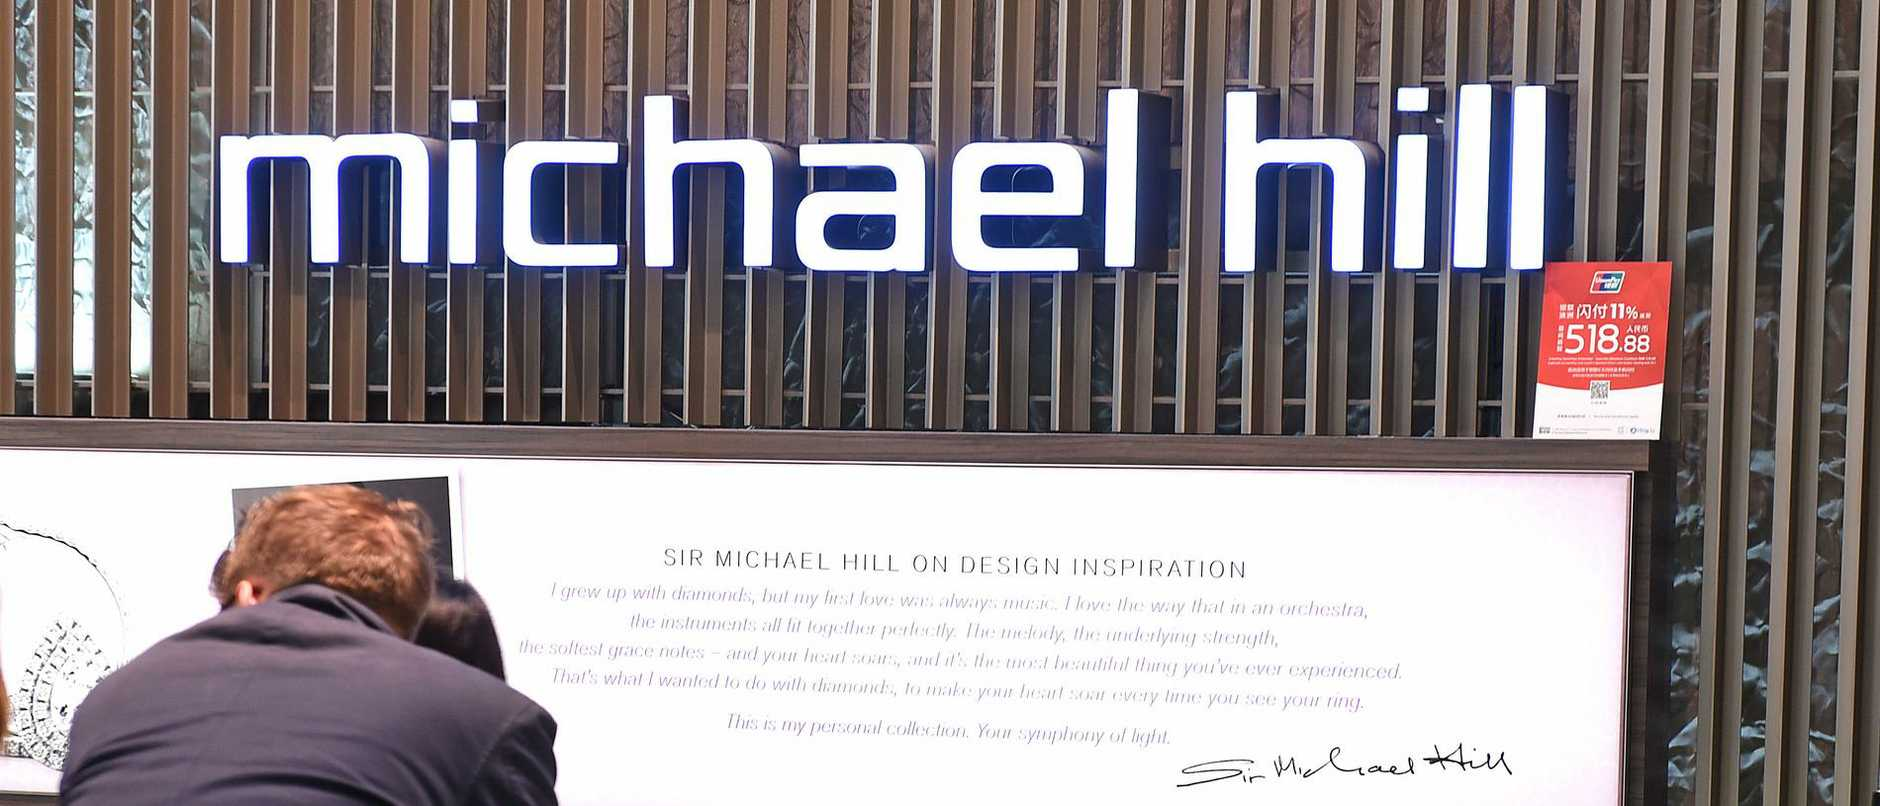 Michael Hill International underpaid staff by millions.